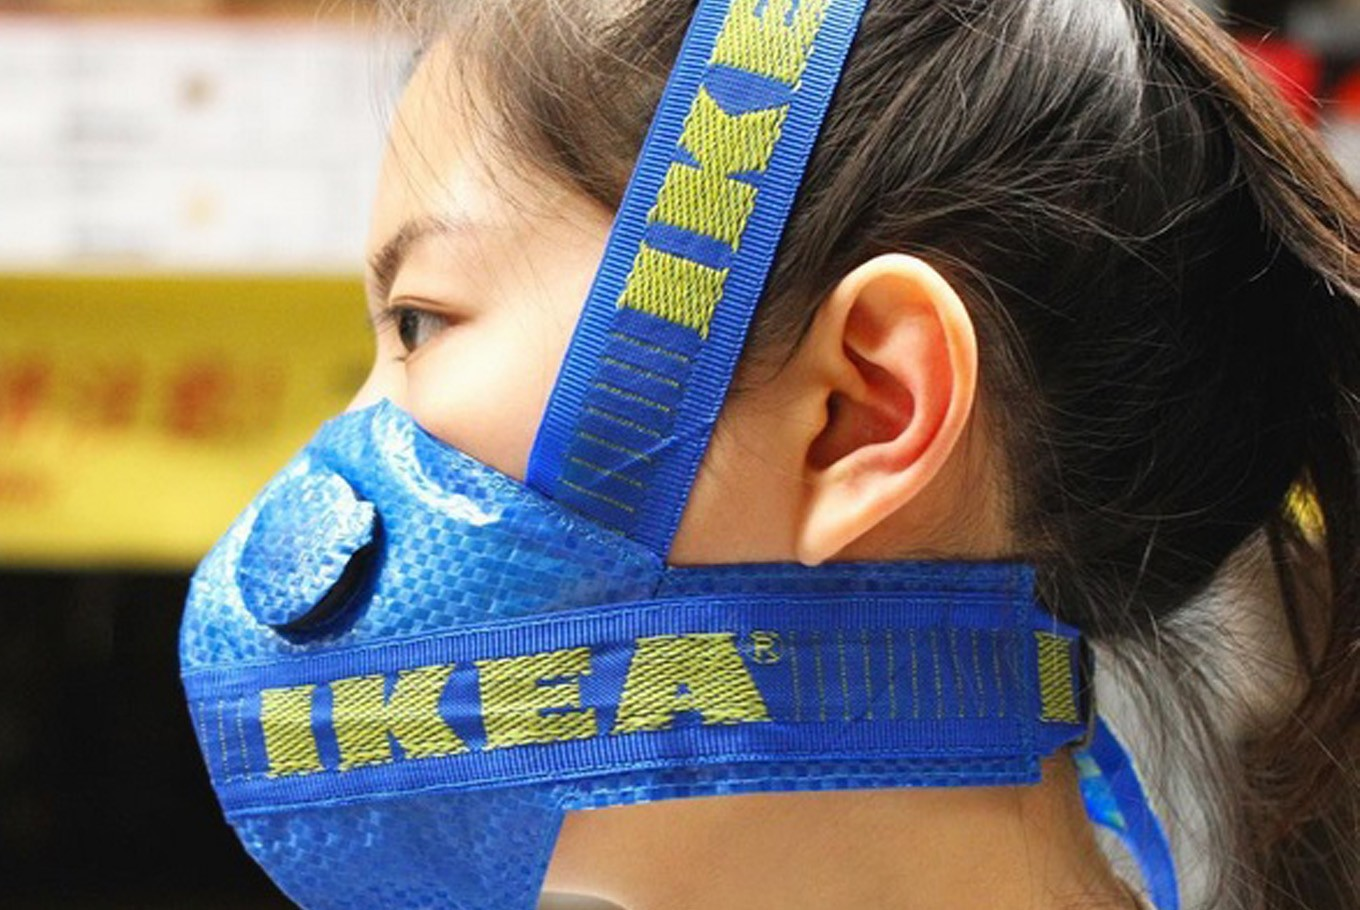 Social media users turn Ikea's Frakta bag into fashion items